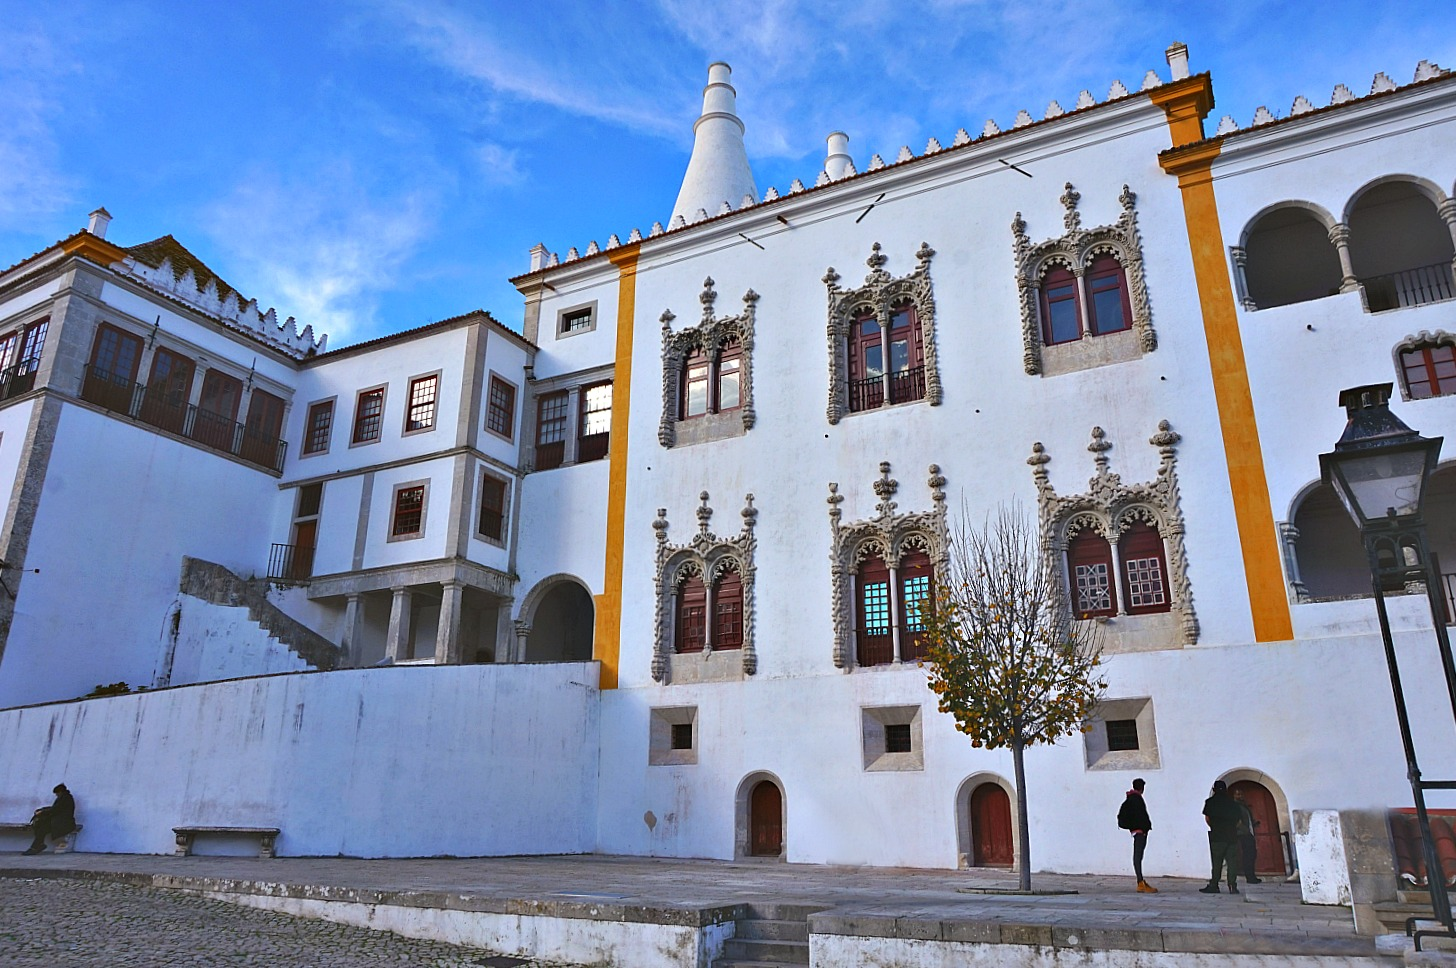 Portugal - one week itinerary. Palacio National de Sintra, remains one of the Portugal's top attractions.